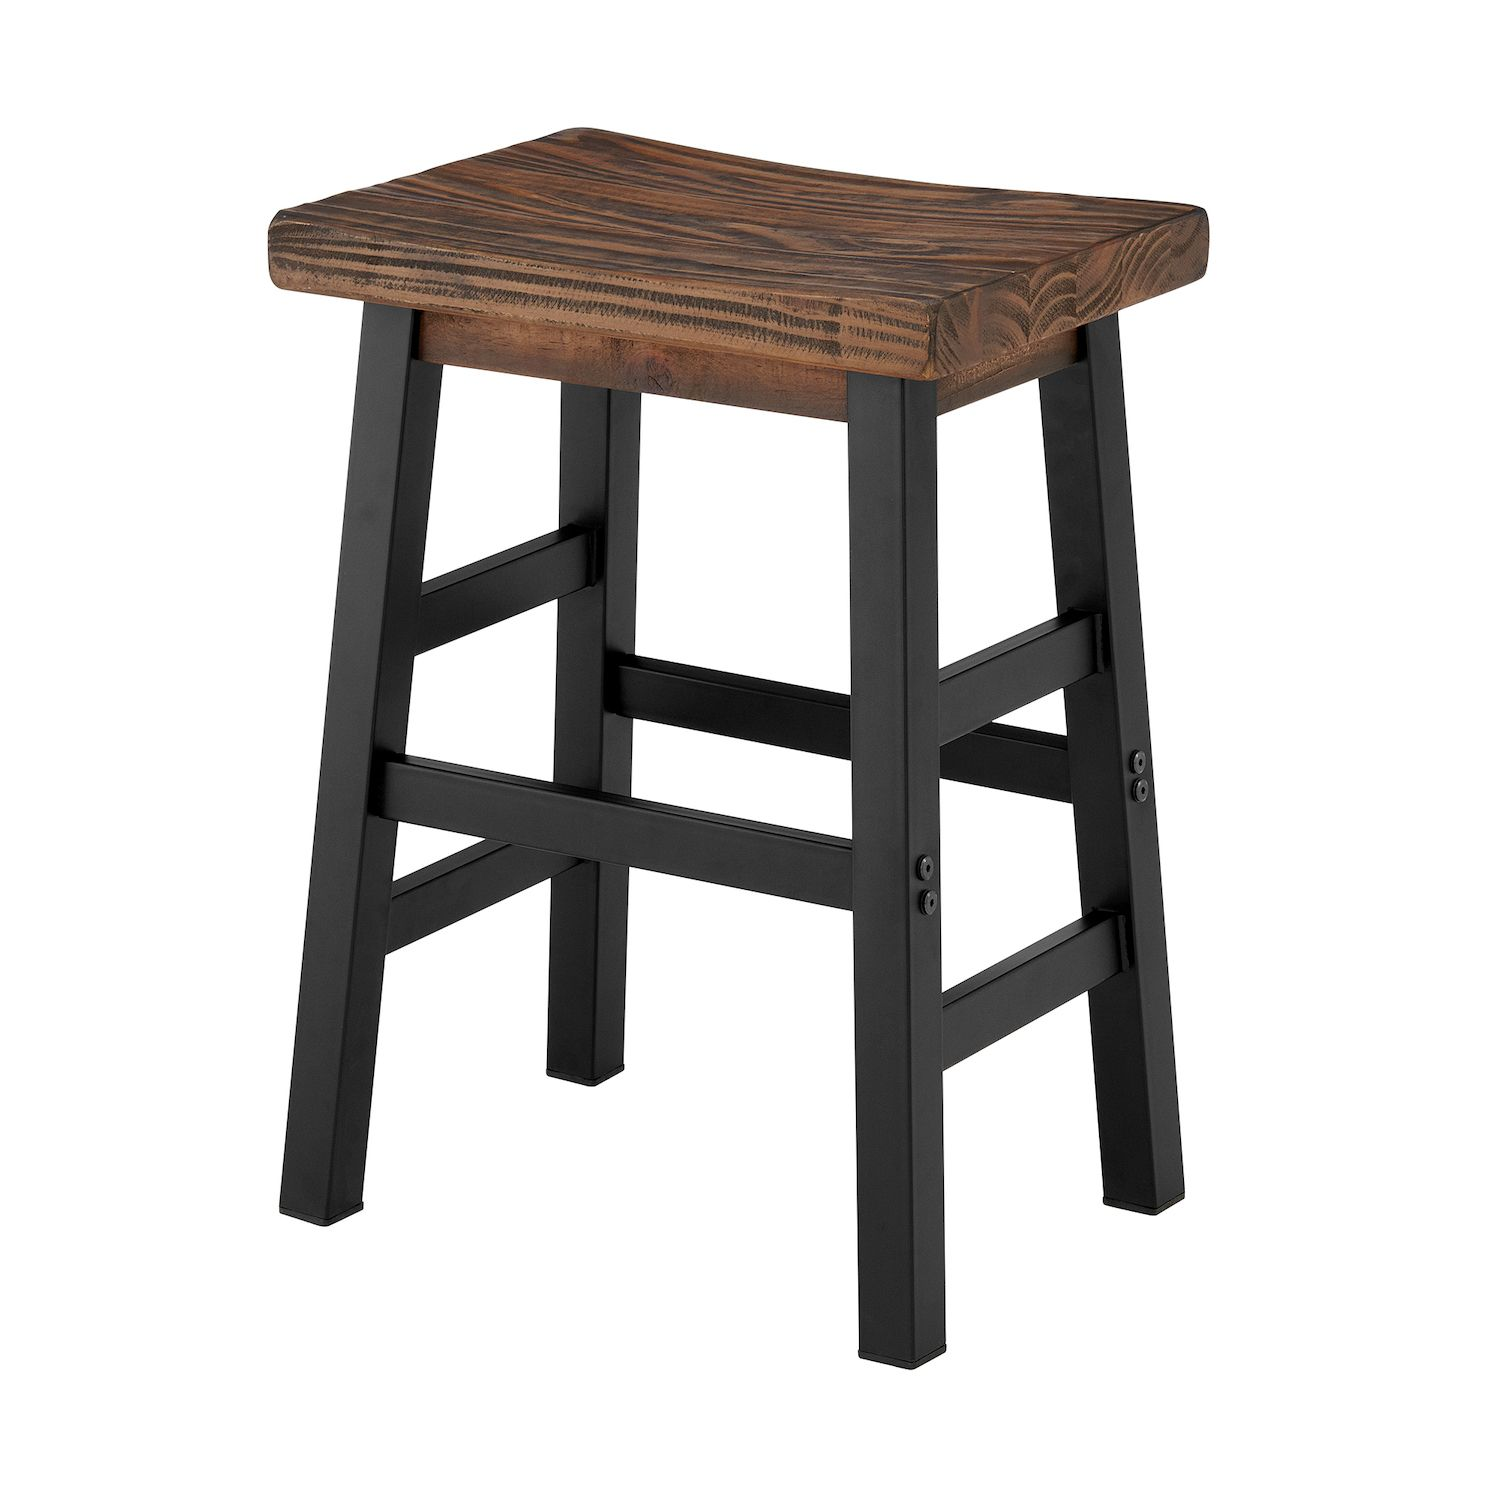 Charmant Alaterre Furniture Pomona Industrial Farmhouse Stool. Regular